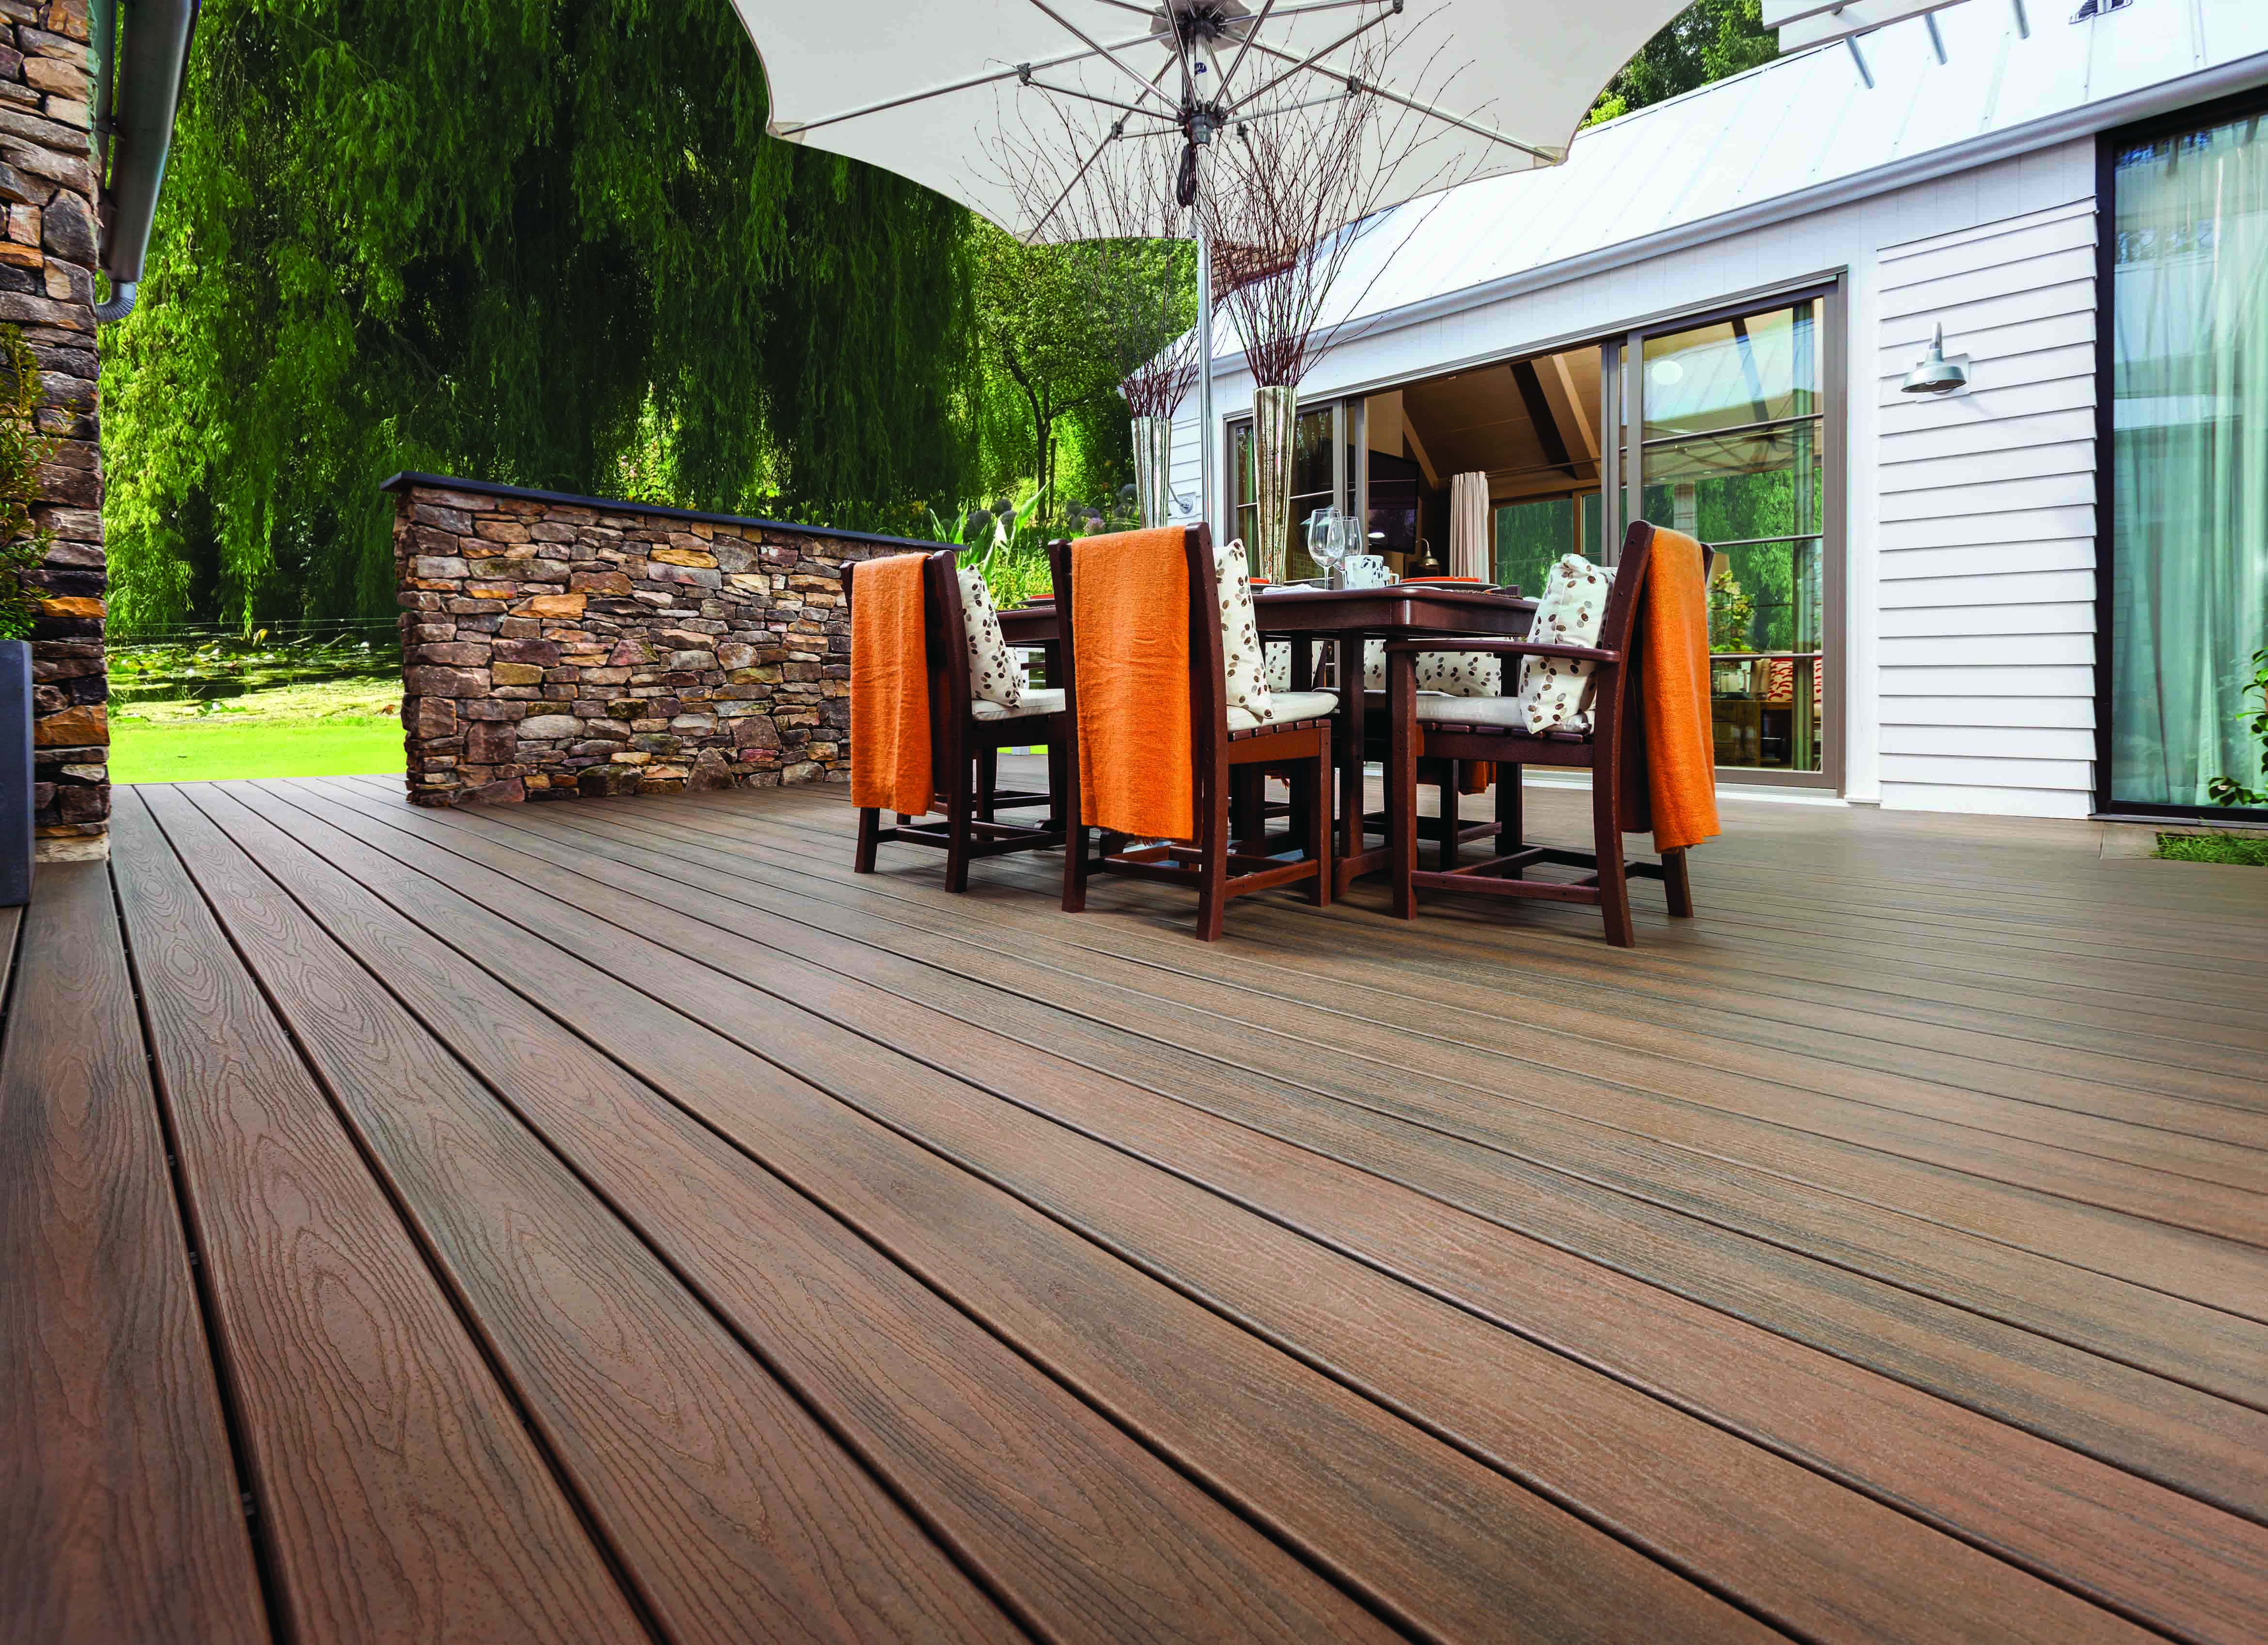 Wpc terrasse trex wood alternative deck railing lighting and